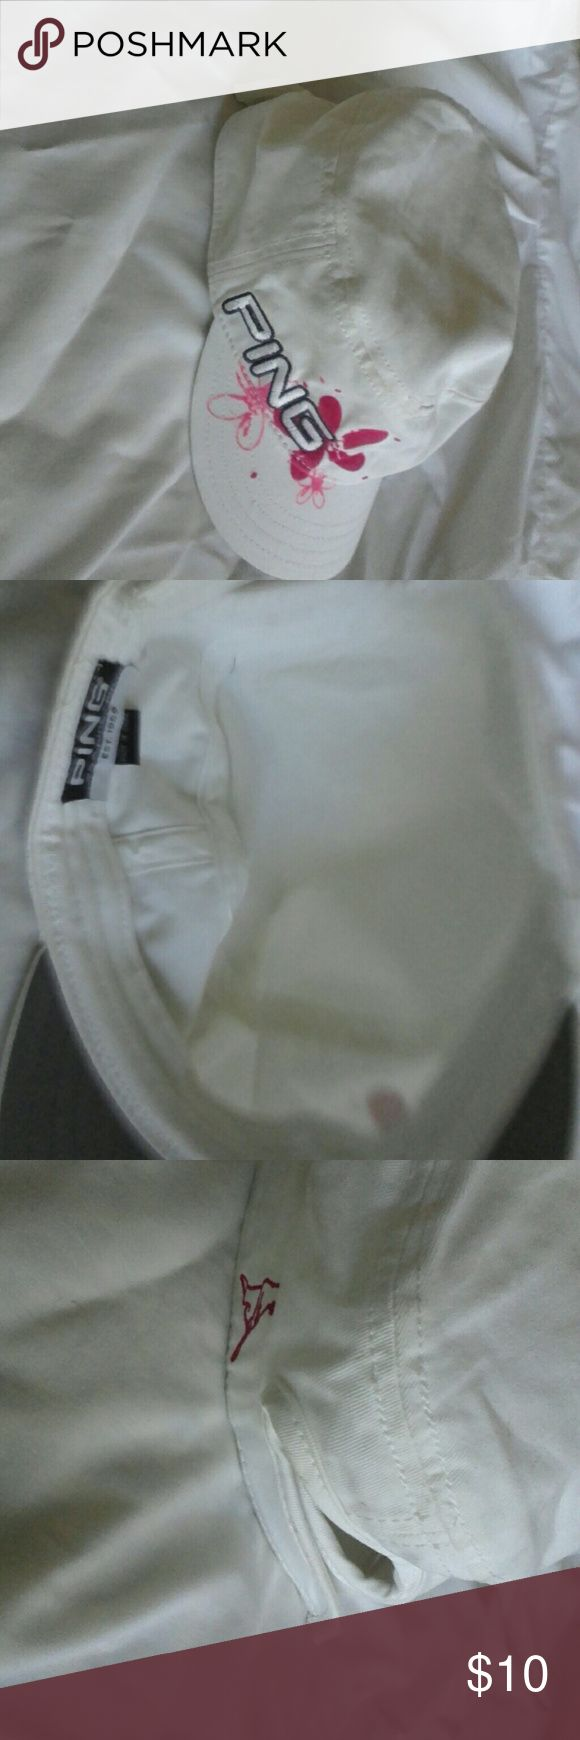 Ping Ladies Cap  $10 +free gift Ping Ladies Cap $10 one-size-fits-all pre-owned condition excellent no stains no flaws+free gift any other item in this closet priced$10 or less. ping Accessories Hats